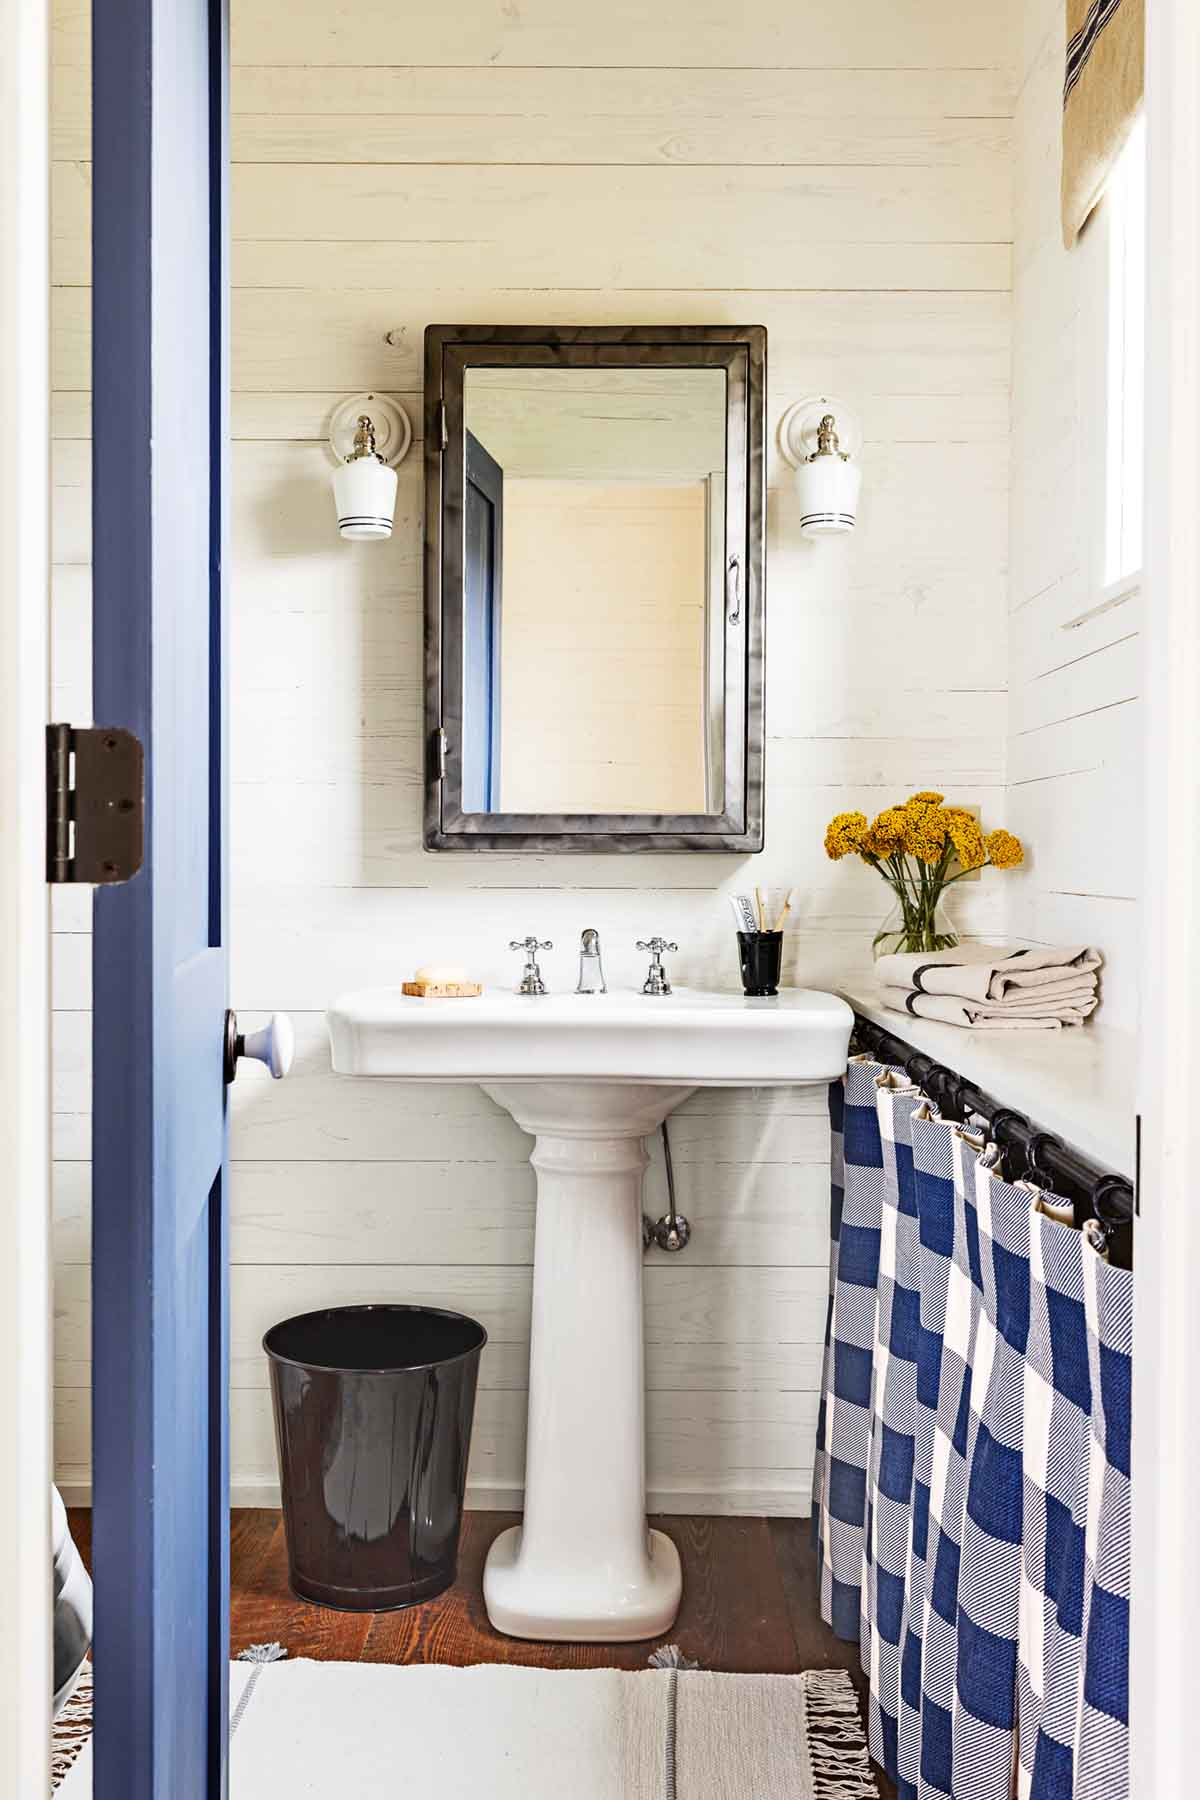 34 Rustic Bathroom Decor Ideas - Rustic Modern Bathroom ...